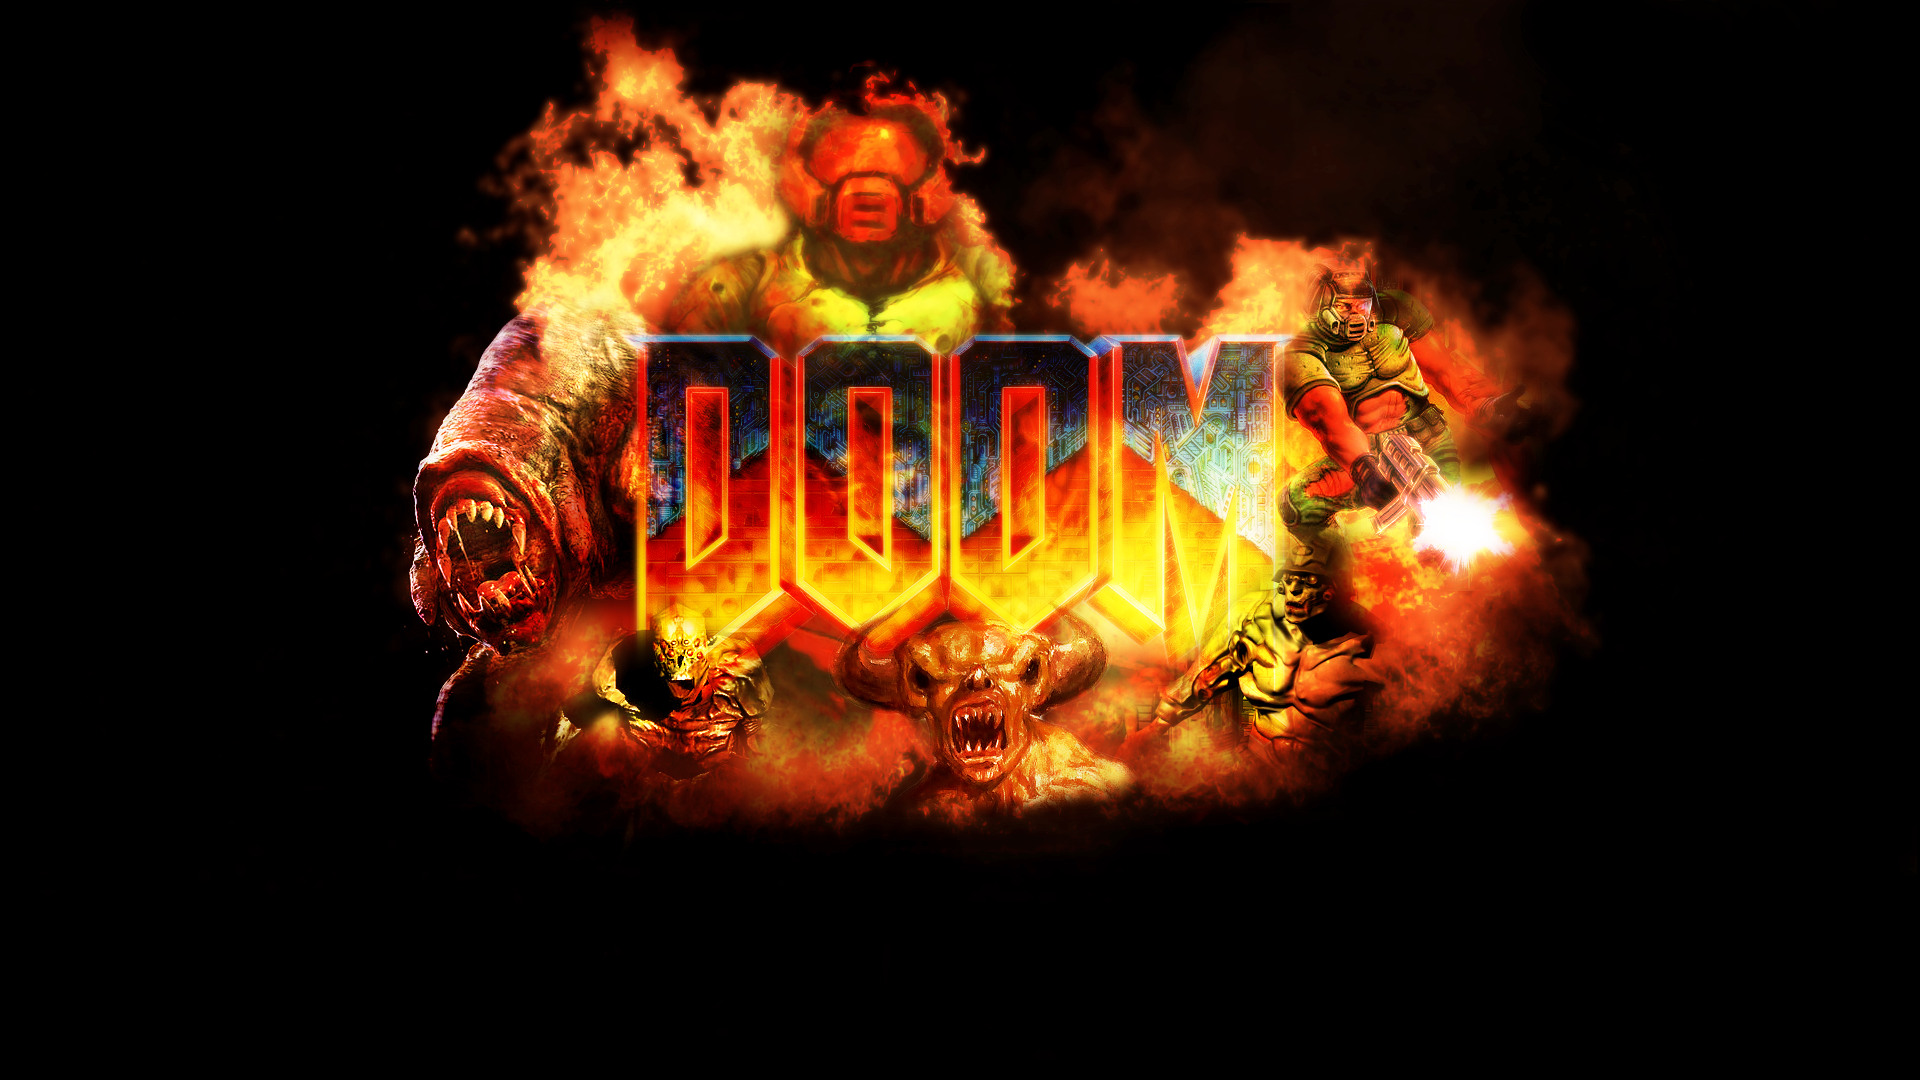 Doom Wallpaper